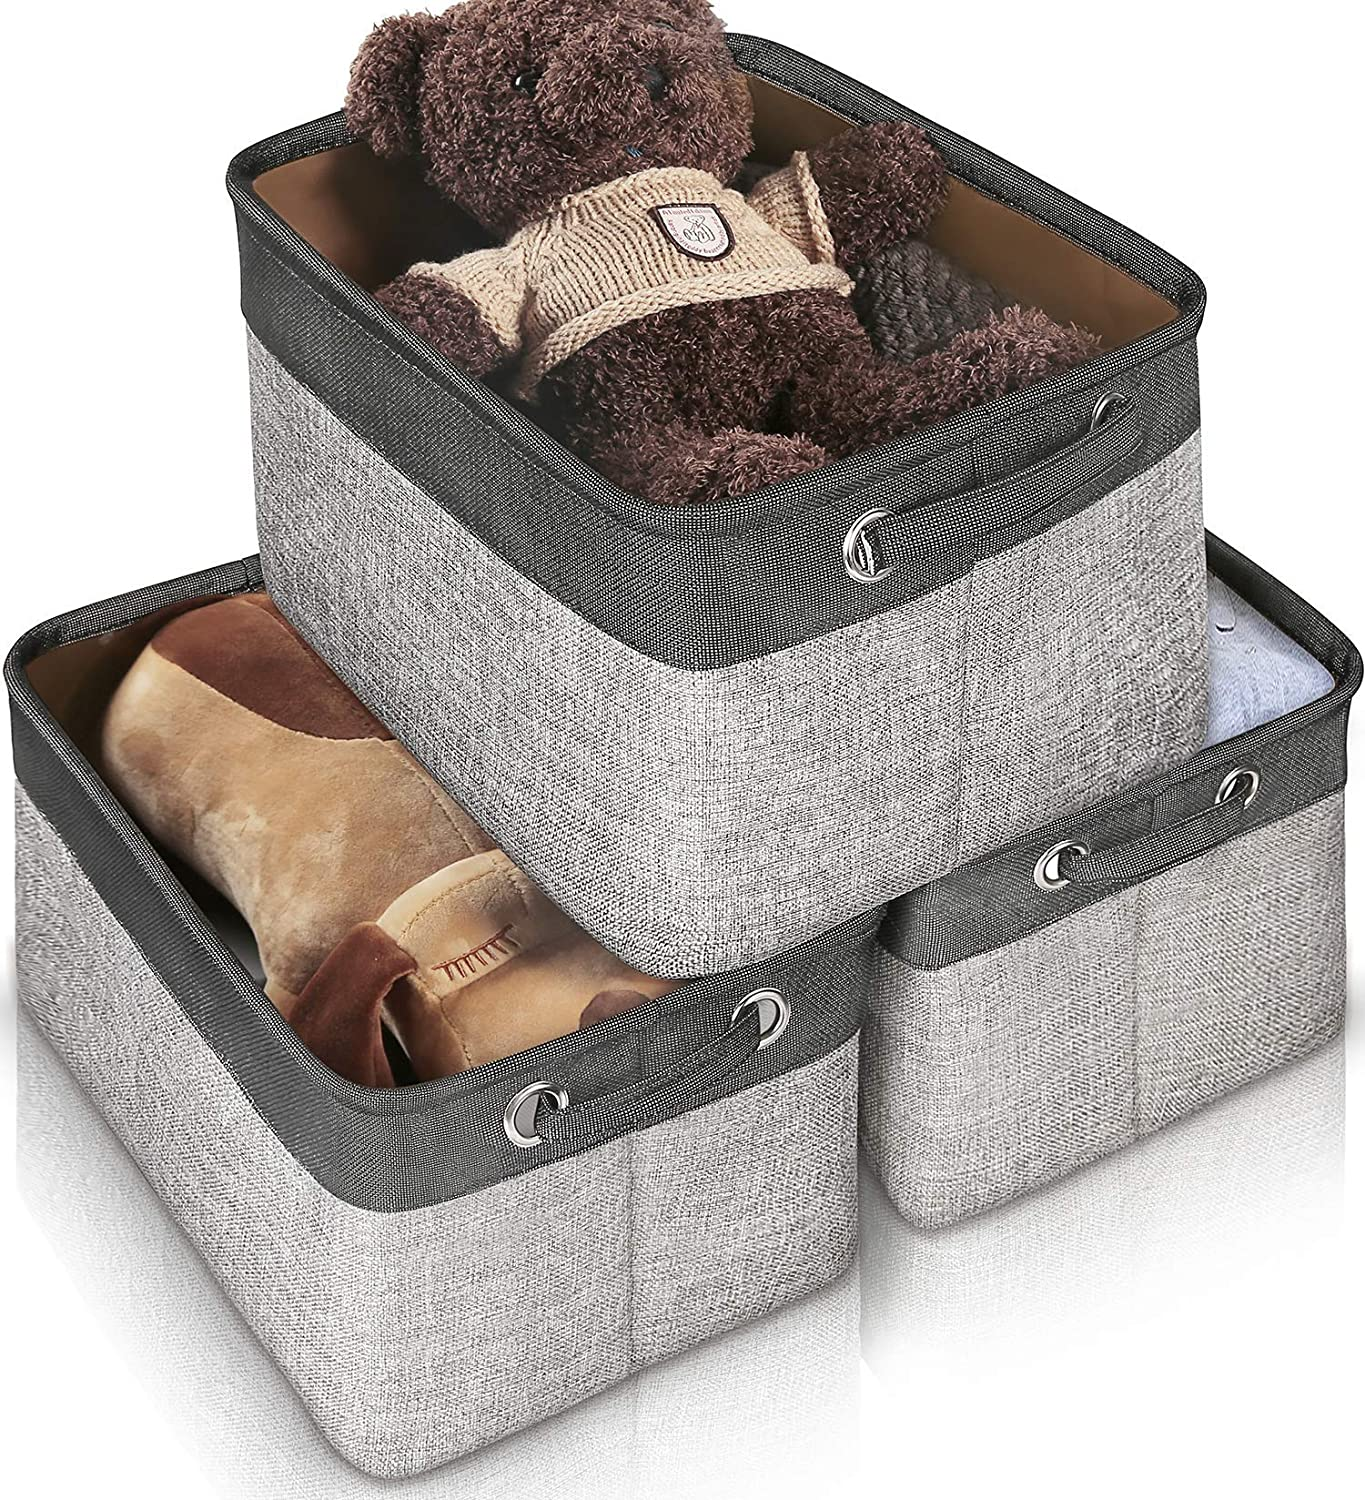 Storage Basket Bin Set [3-Pack], JOMARTO Large Cube Storage Box Linen Fabric Built-in Soft Lining Collapsible Storage Organizer with Handles for Nursery Shelf - 15 L x 10 W x 9 H(Grey+Black)